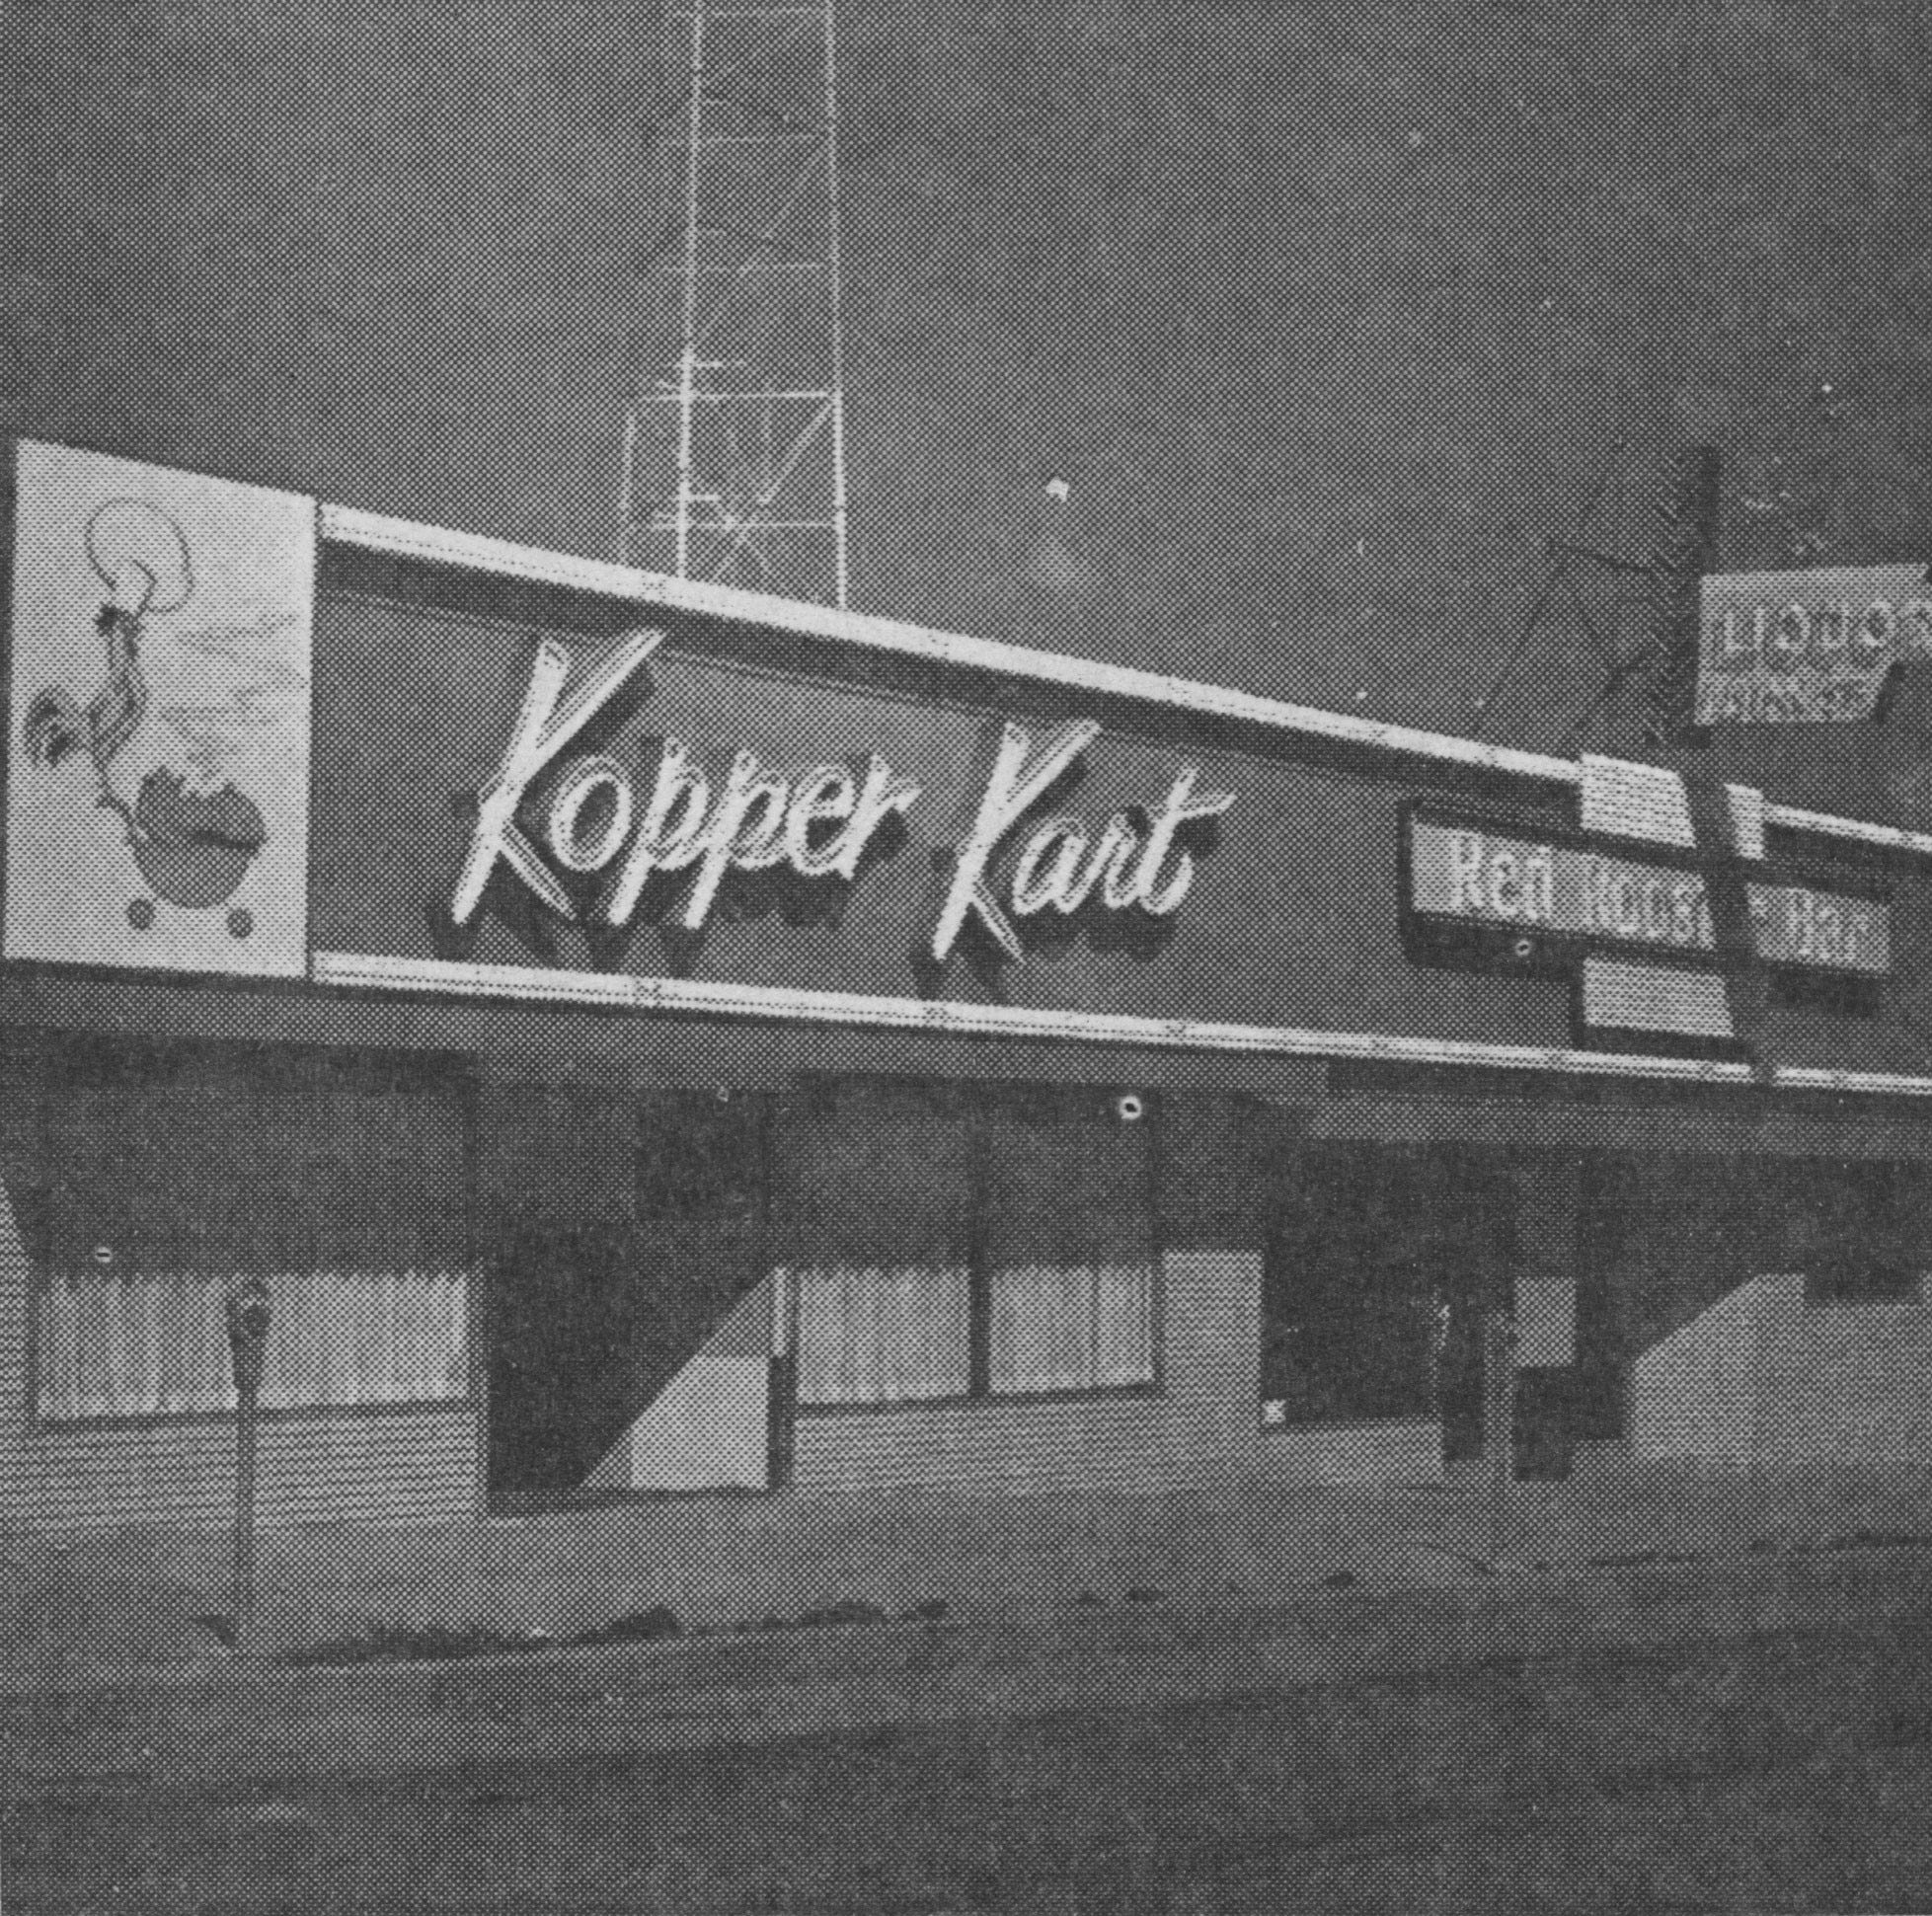 Looking Back: Kopper Kart was first restaurant in decades to serve food and alcohol